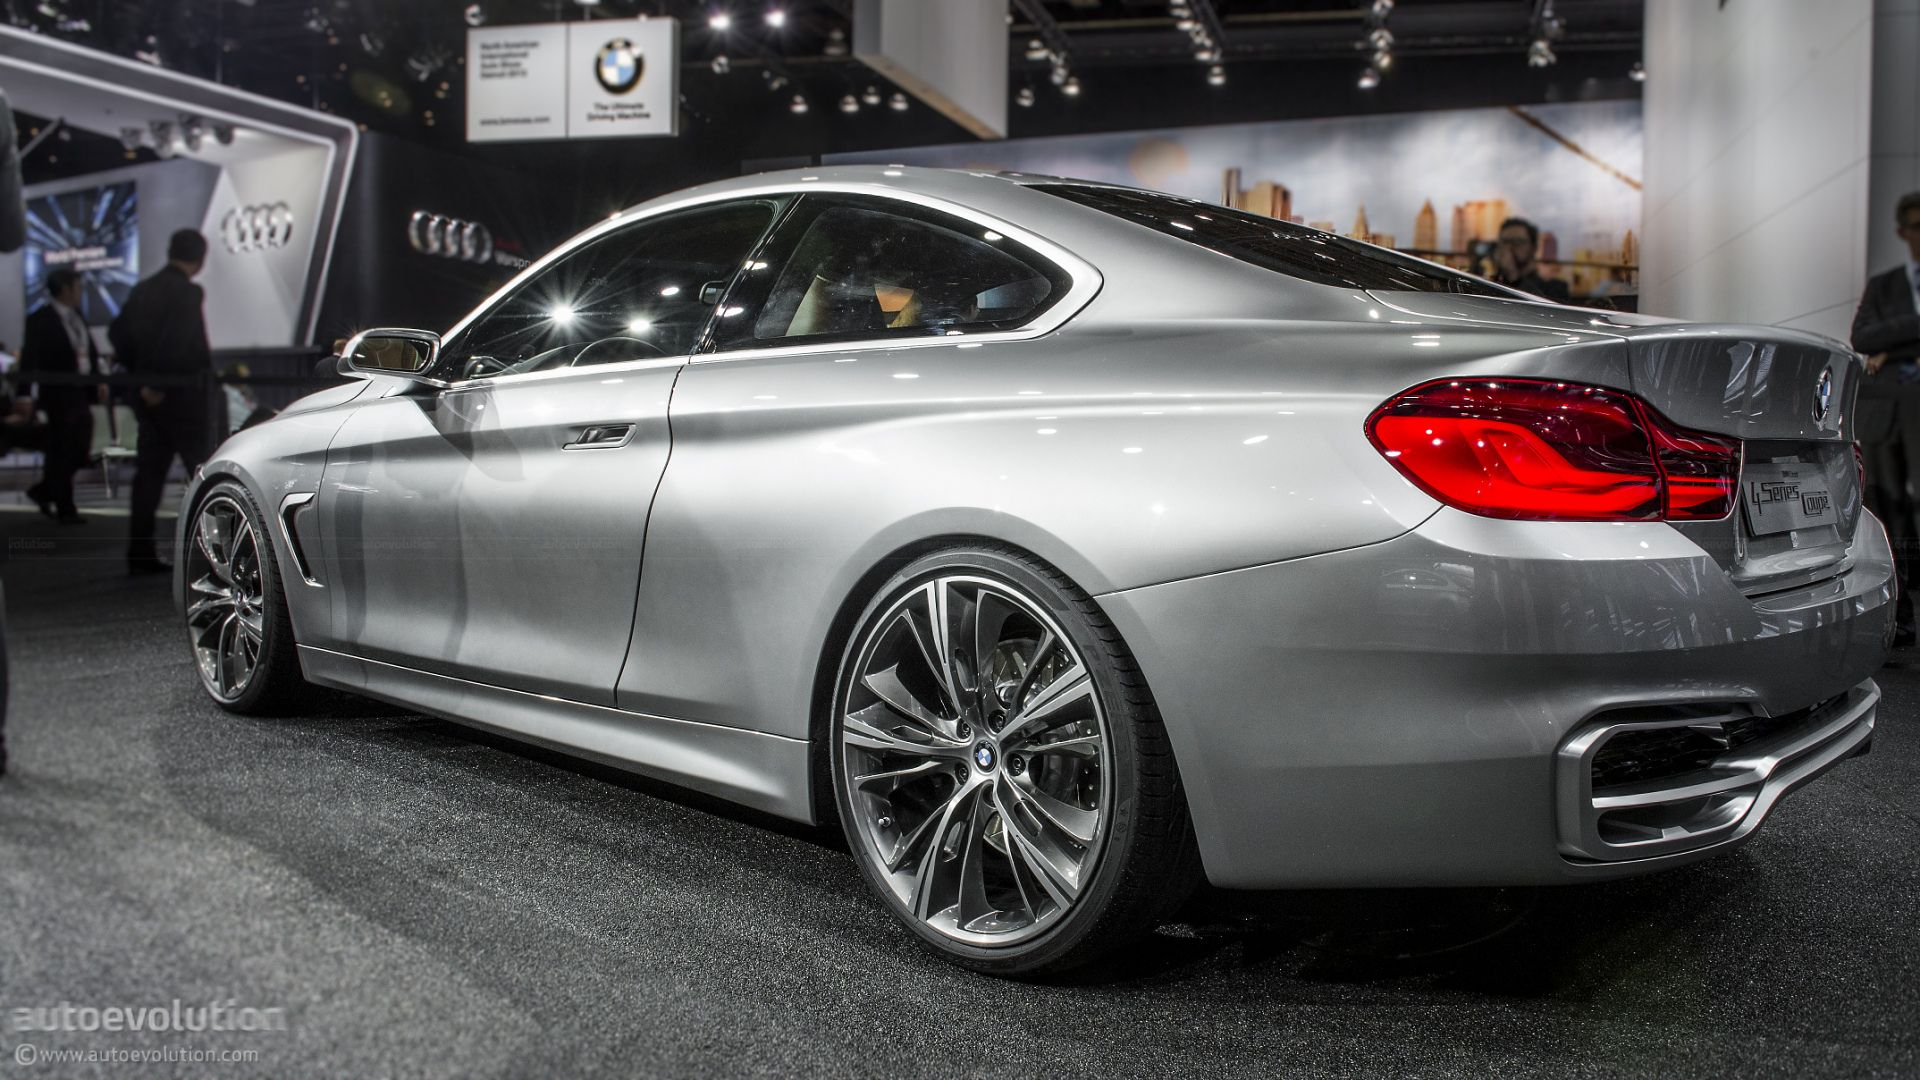 2013-latest-bmw-4-series-coupe-concept-.jpg (1920×1080) | Cars ...